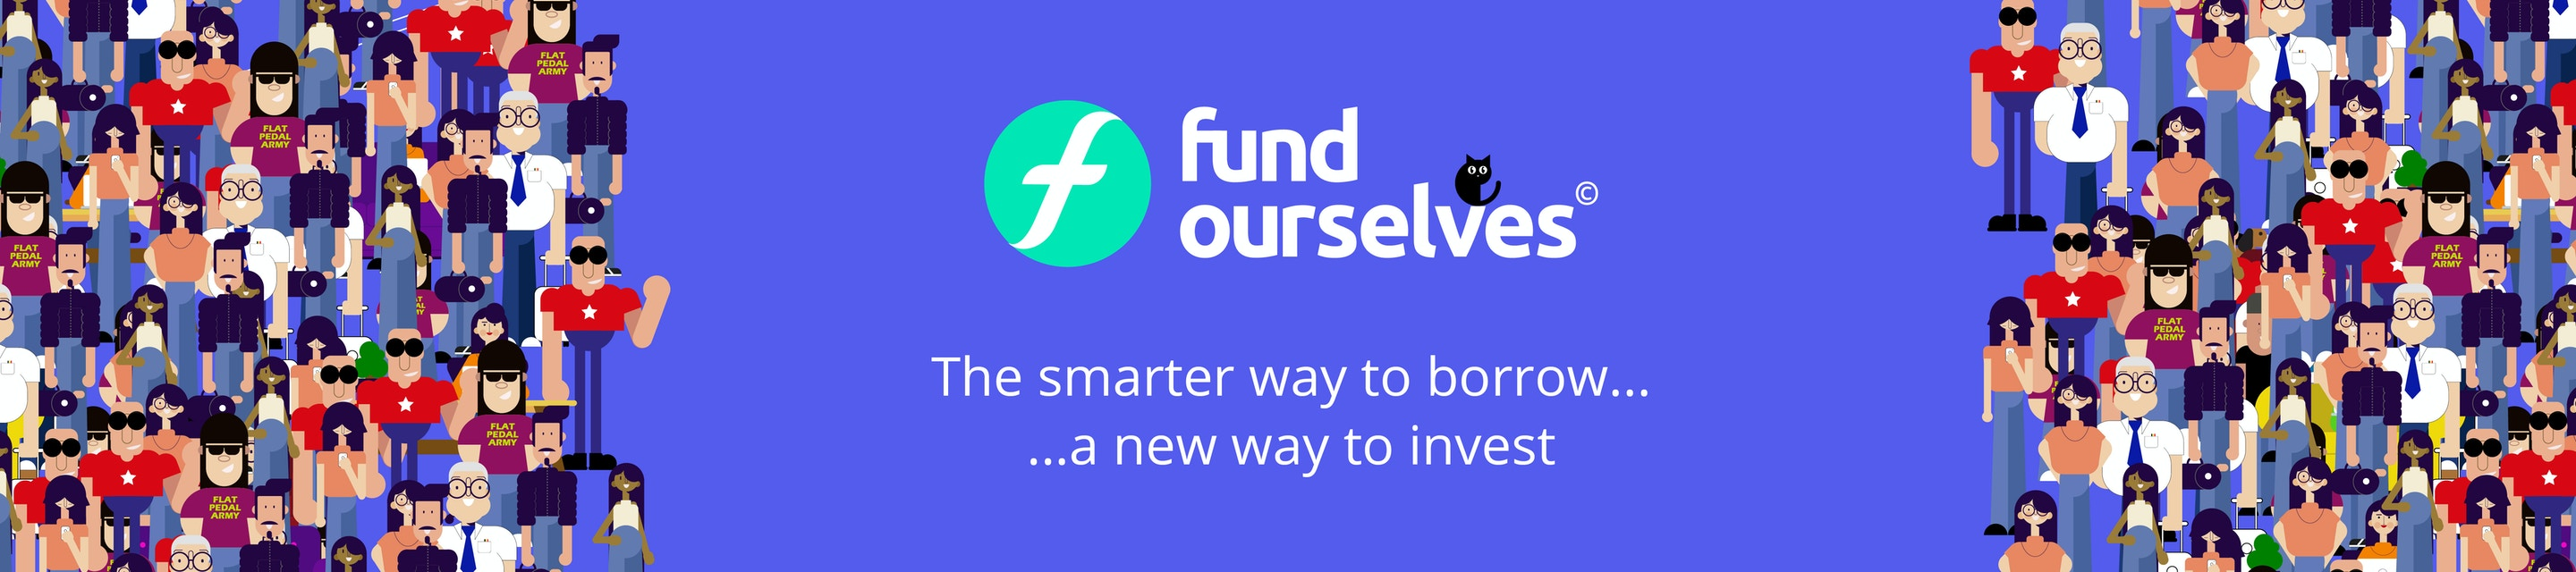 Fund Ourselves hero image